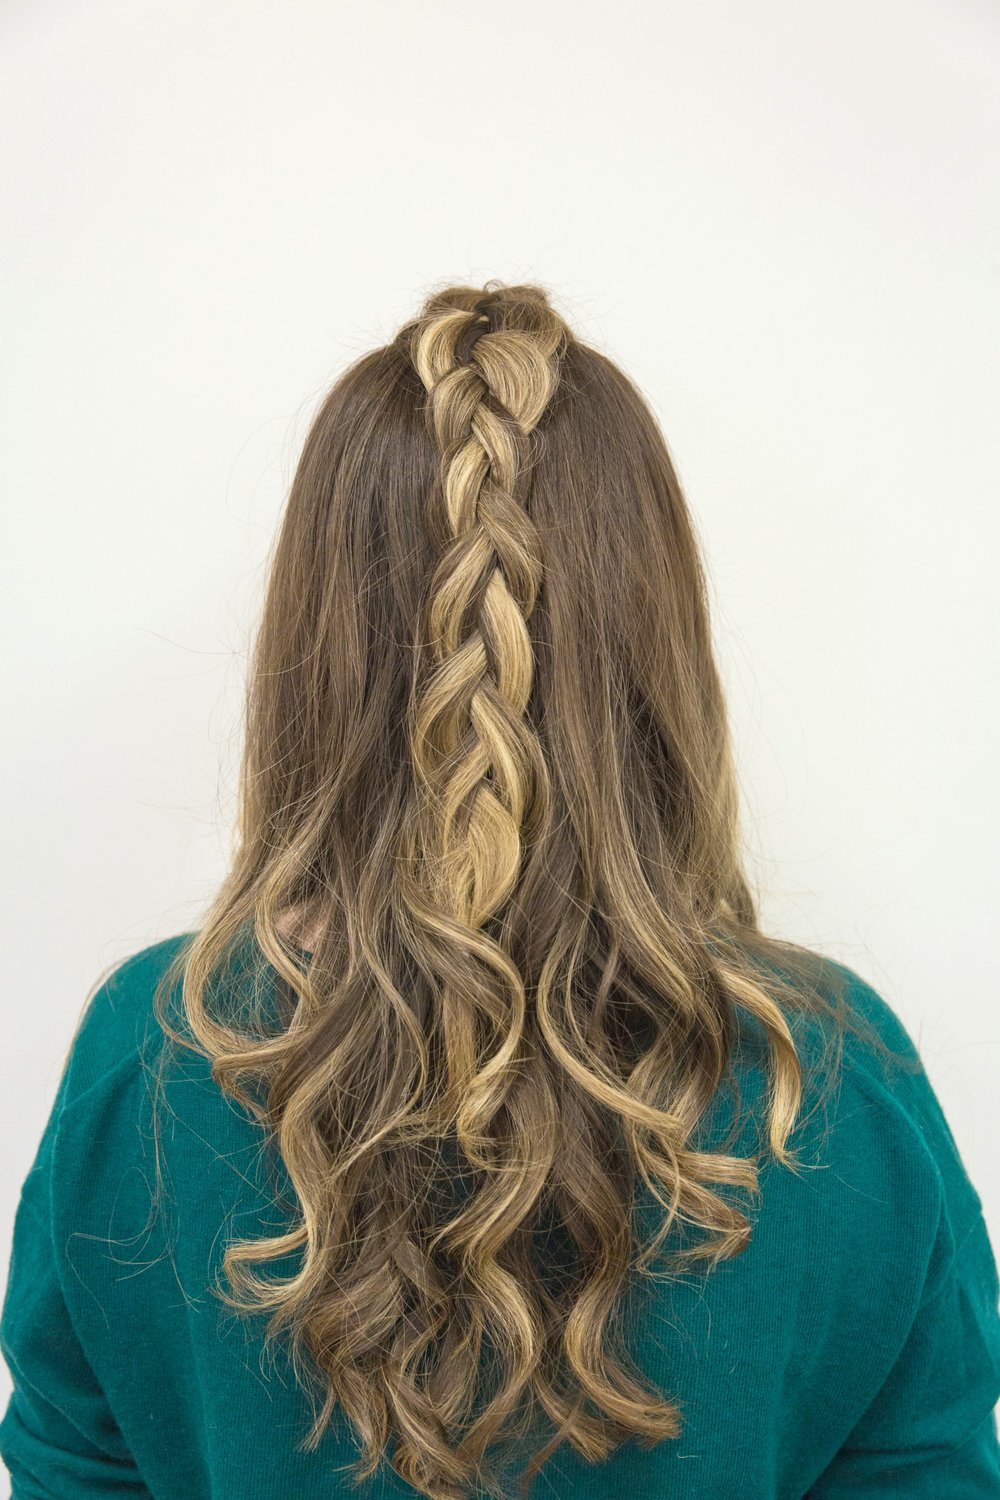 Holiday Hairstyle with curls and braids #BeautyBrands